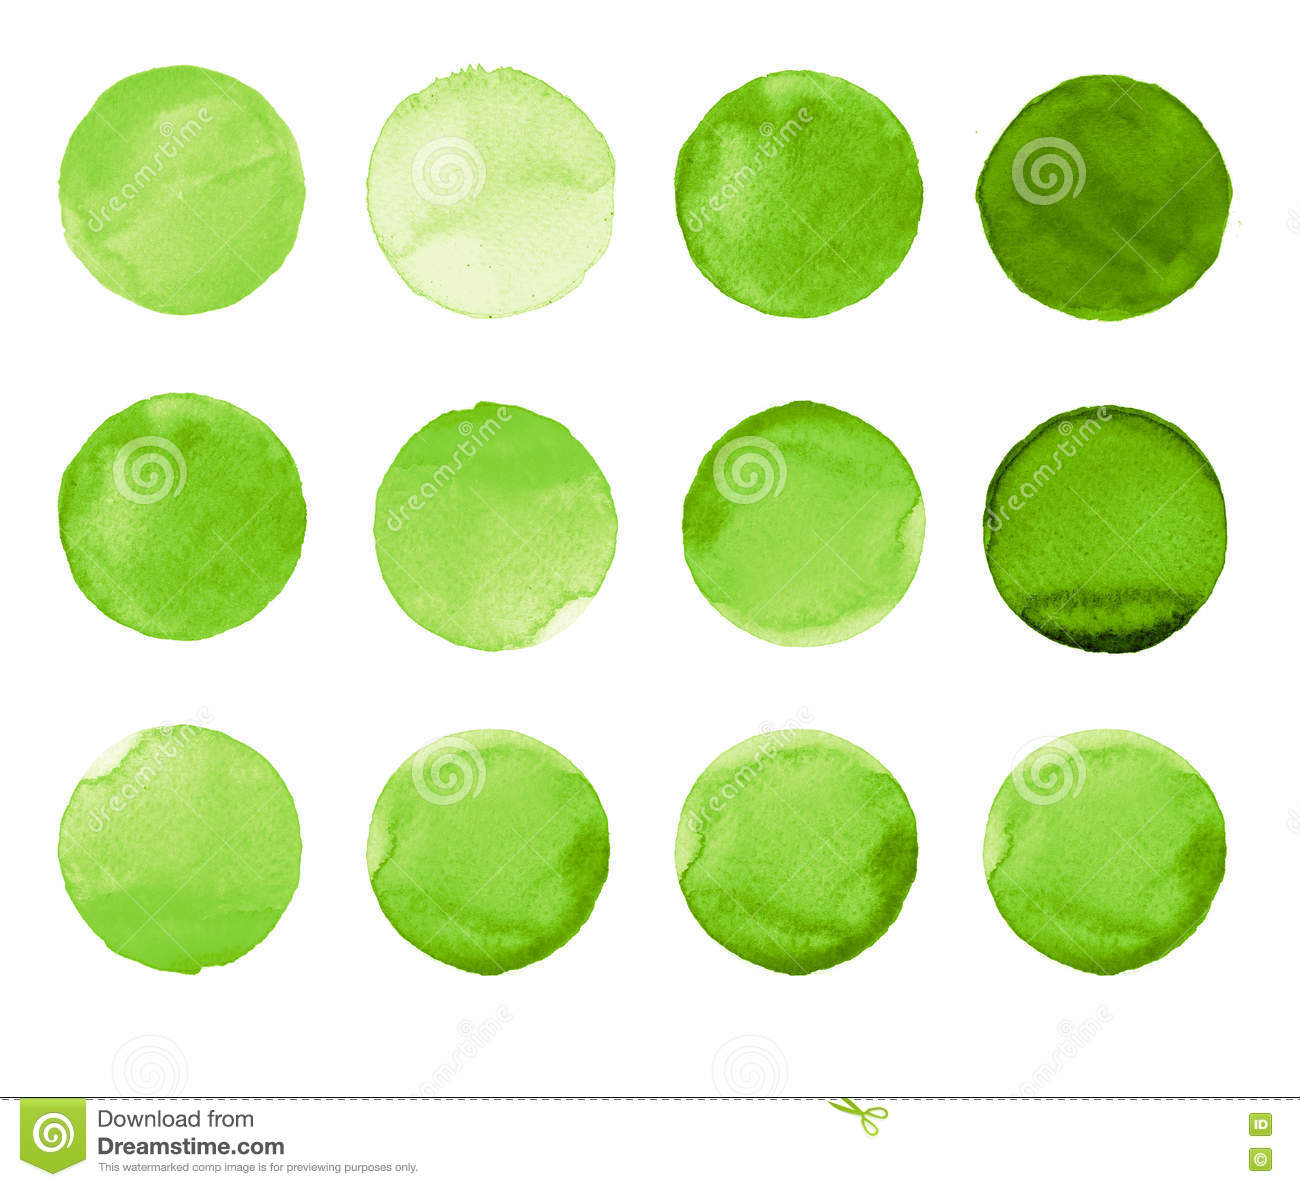 Download Set Of Green Watercolor Hand Painted Circle Isolated On White. Illustration For Artistic Design. Round Stains, Blobs Stock Illustration - Illustration of drop, circle: 81809004